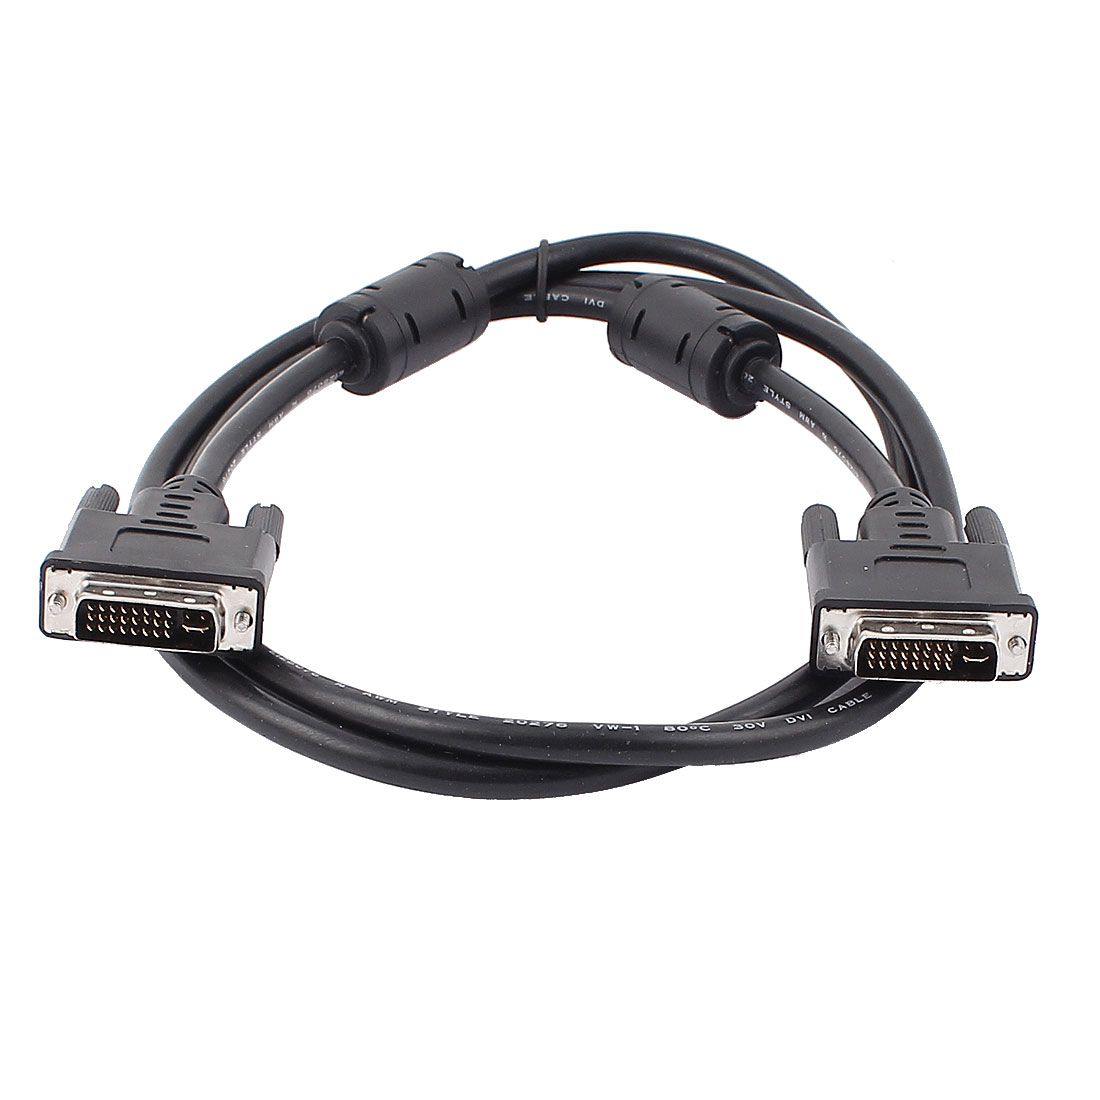 Black 24+5 Pin DVI-I Dual Link Plug Male to Male M/M Cable 1.5M 4.9ft